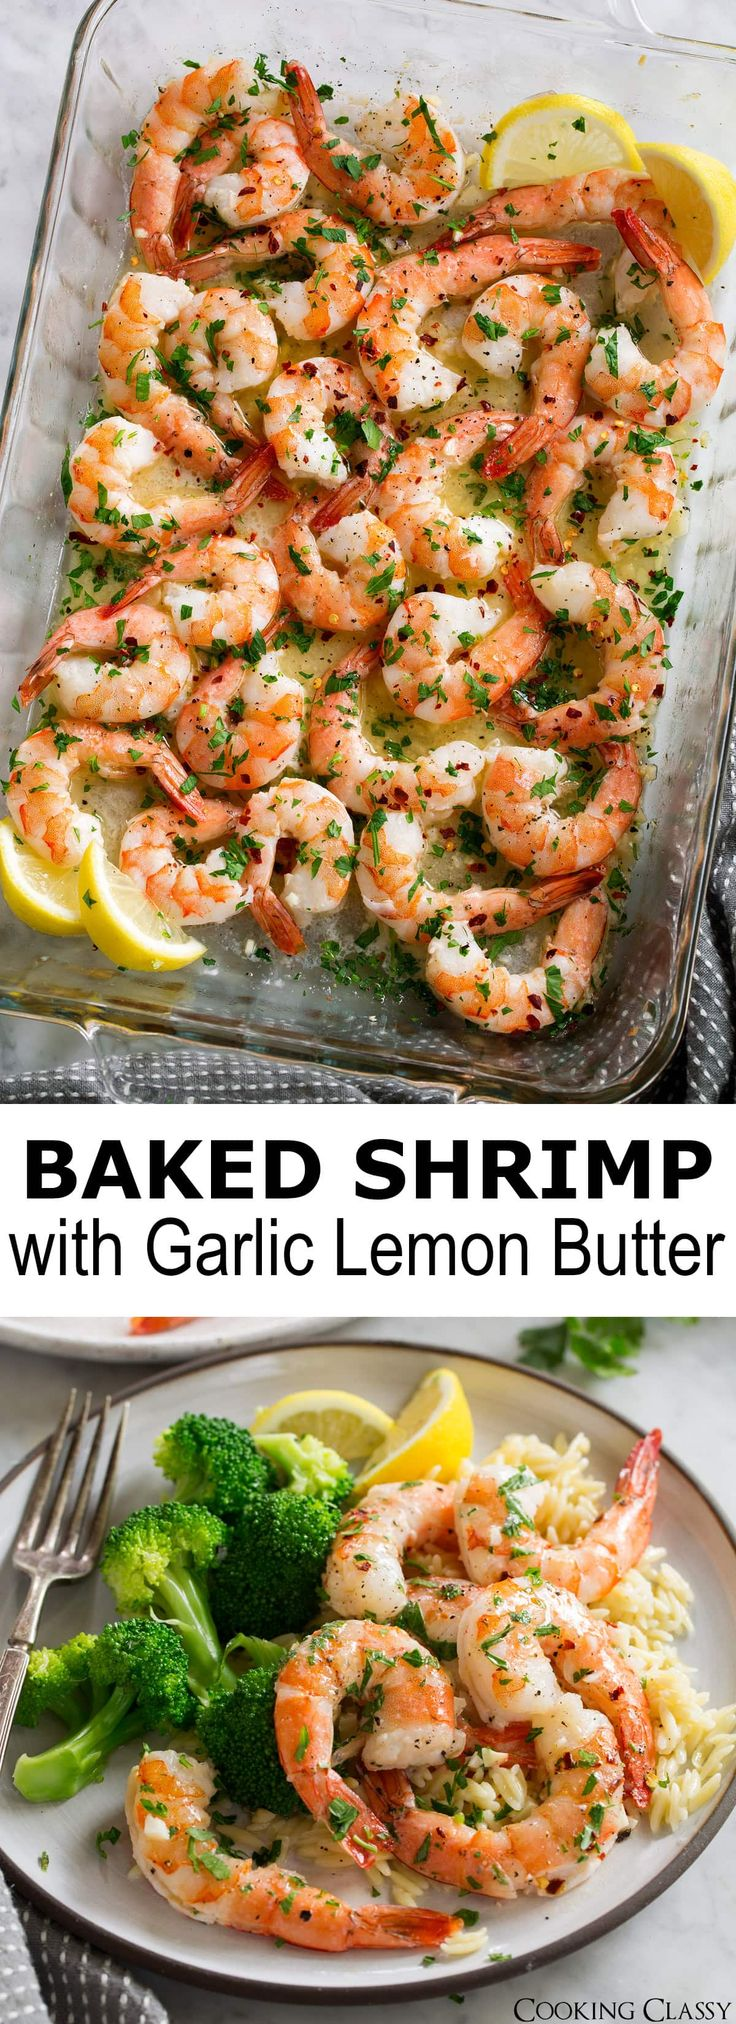 Baked Shrimp with a simple Garlic Lemon Butter Sauce – this recipe couldn't get any easier and you'll be dreaming about this sauce! You get perfectly tender baked shrimp covered in a bright, rich sauce that's perfect for sopping up with fresh crusty bread. Plus you can't beat the quick bake time here! #shrimp #bakedshrimp #dinner #easy #recipe #food #scampi #seafood #garlic #lemon #quickdinner via @cookingclassy